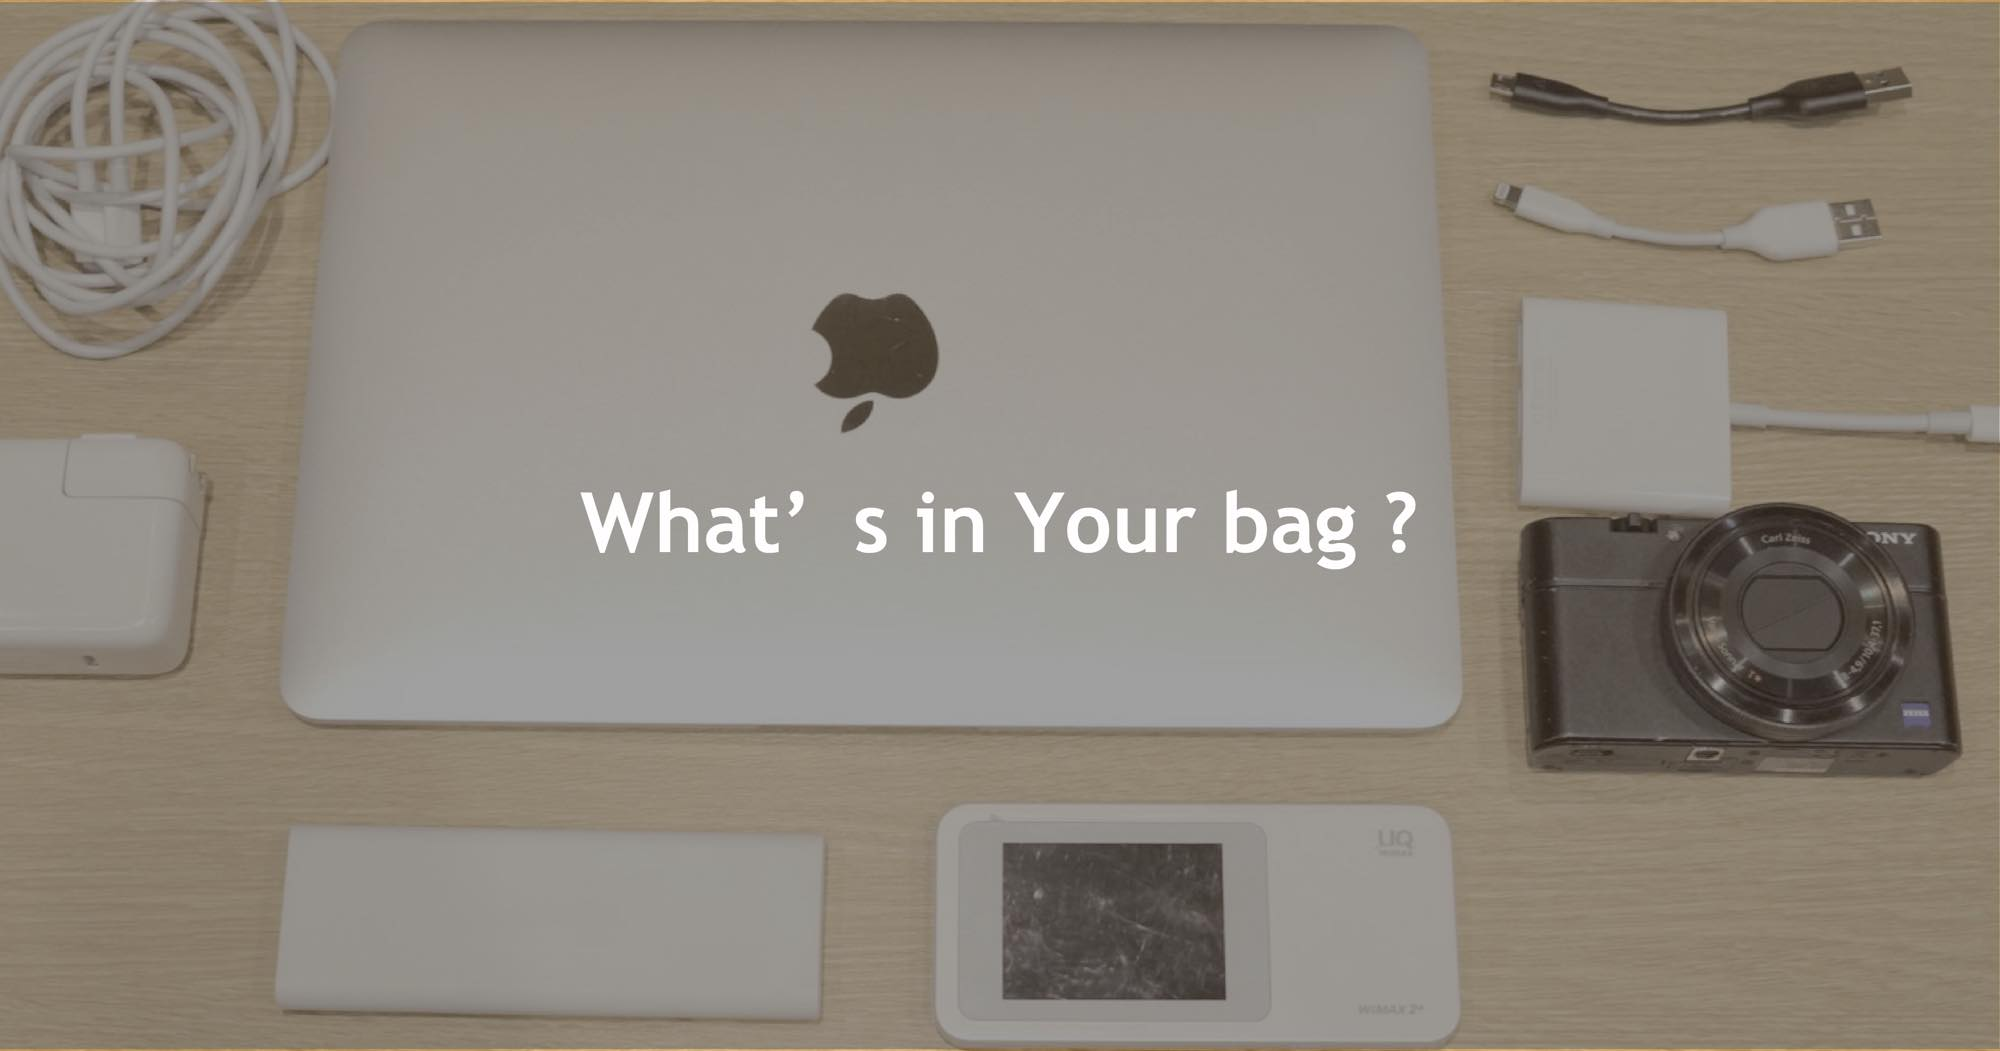 th_Wht'sinyourbag